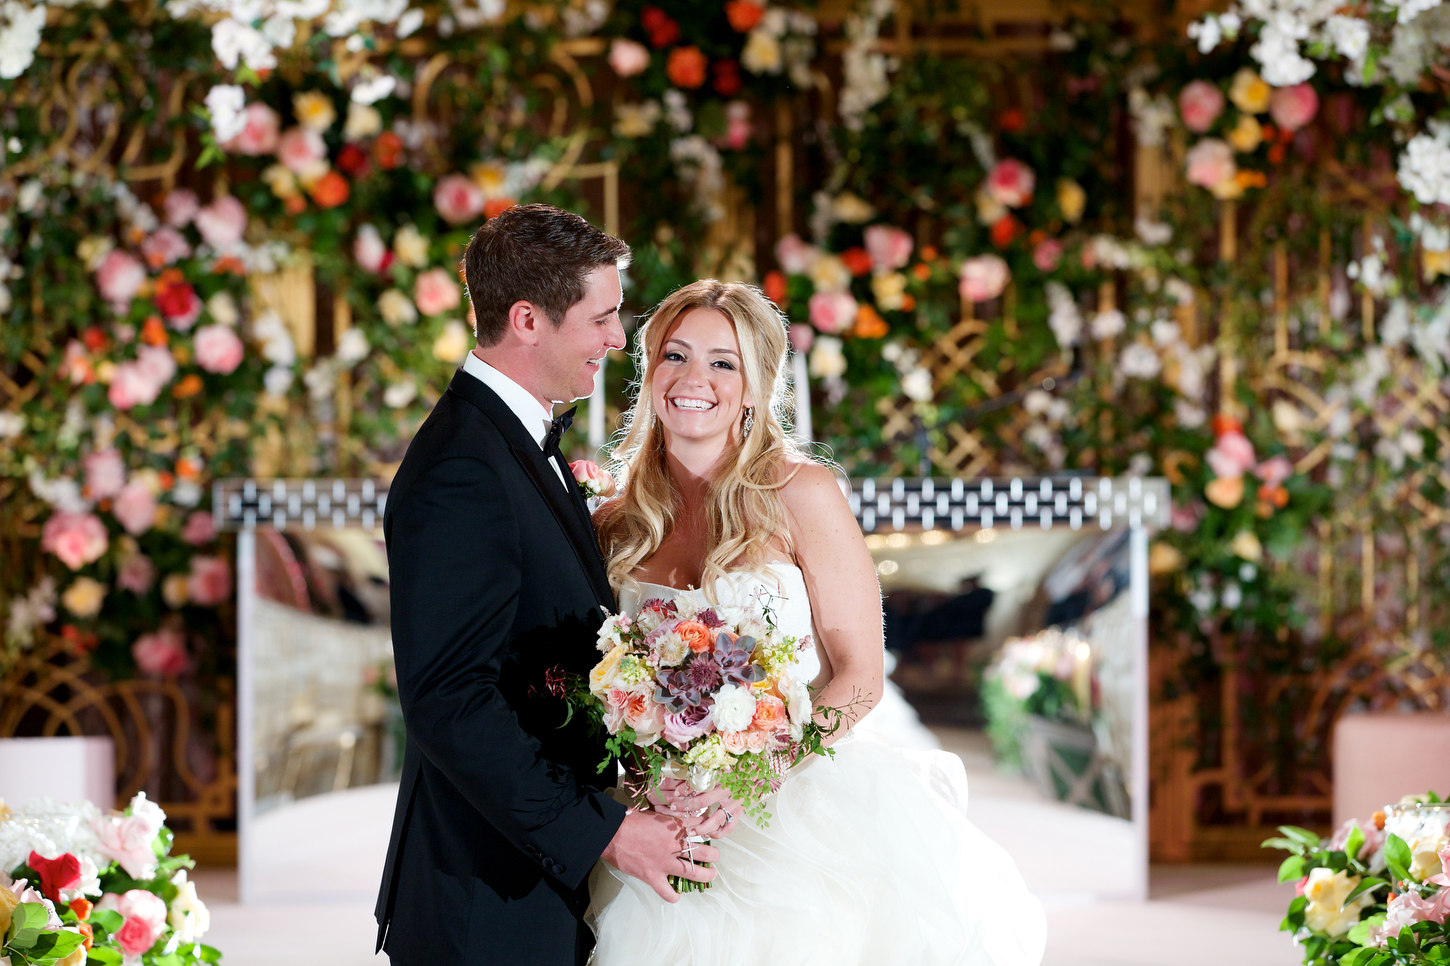 ASHLEY AND MICHAEL'S WEDDING WAS INCREDIBLY LUSH WITH FLOWERS BUT THE LOVE IN THE ROOM WENT FAR BEYOND LUSH, IT WAS UNDENIABLE! A TRULY WONDERFUL FAMILY! THIS BEAUTIFUL WEDDING WAS FEATURED IN INSIDE WEDDINGS AND WAS PERFECT IN EVERY WAY!